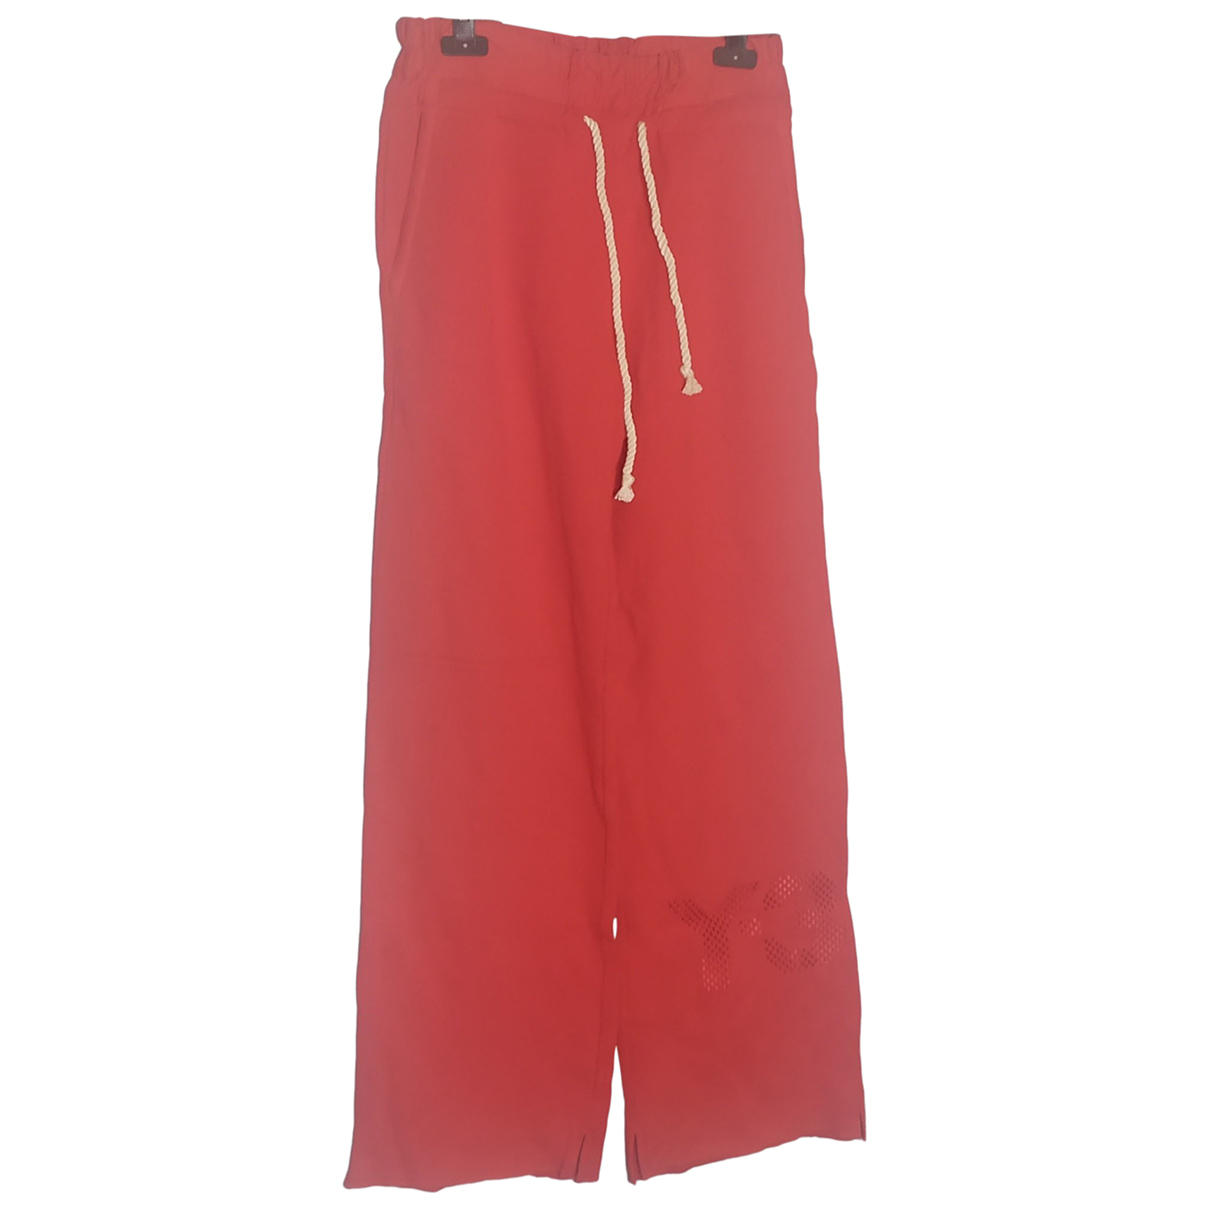 Y-3 N Red Cotton Trousers for Women S International